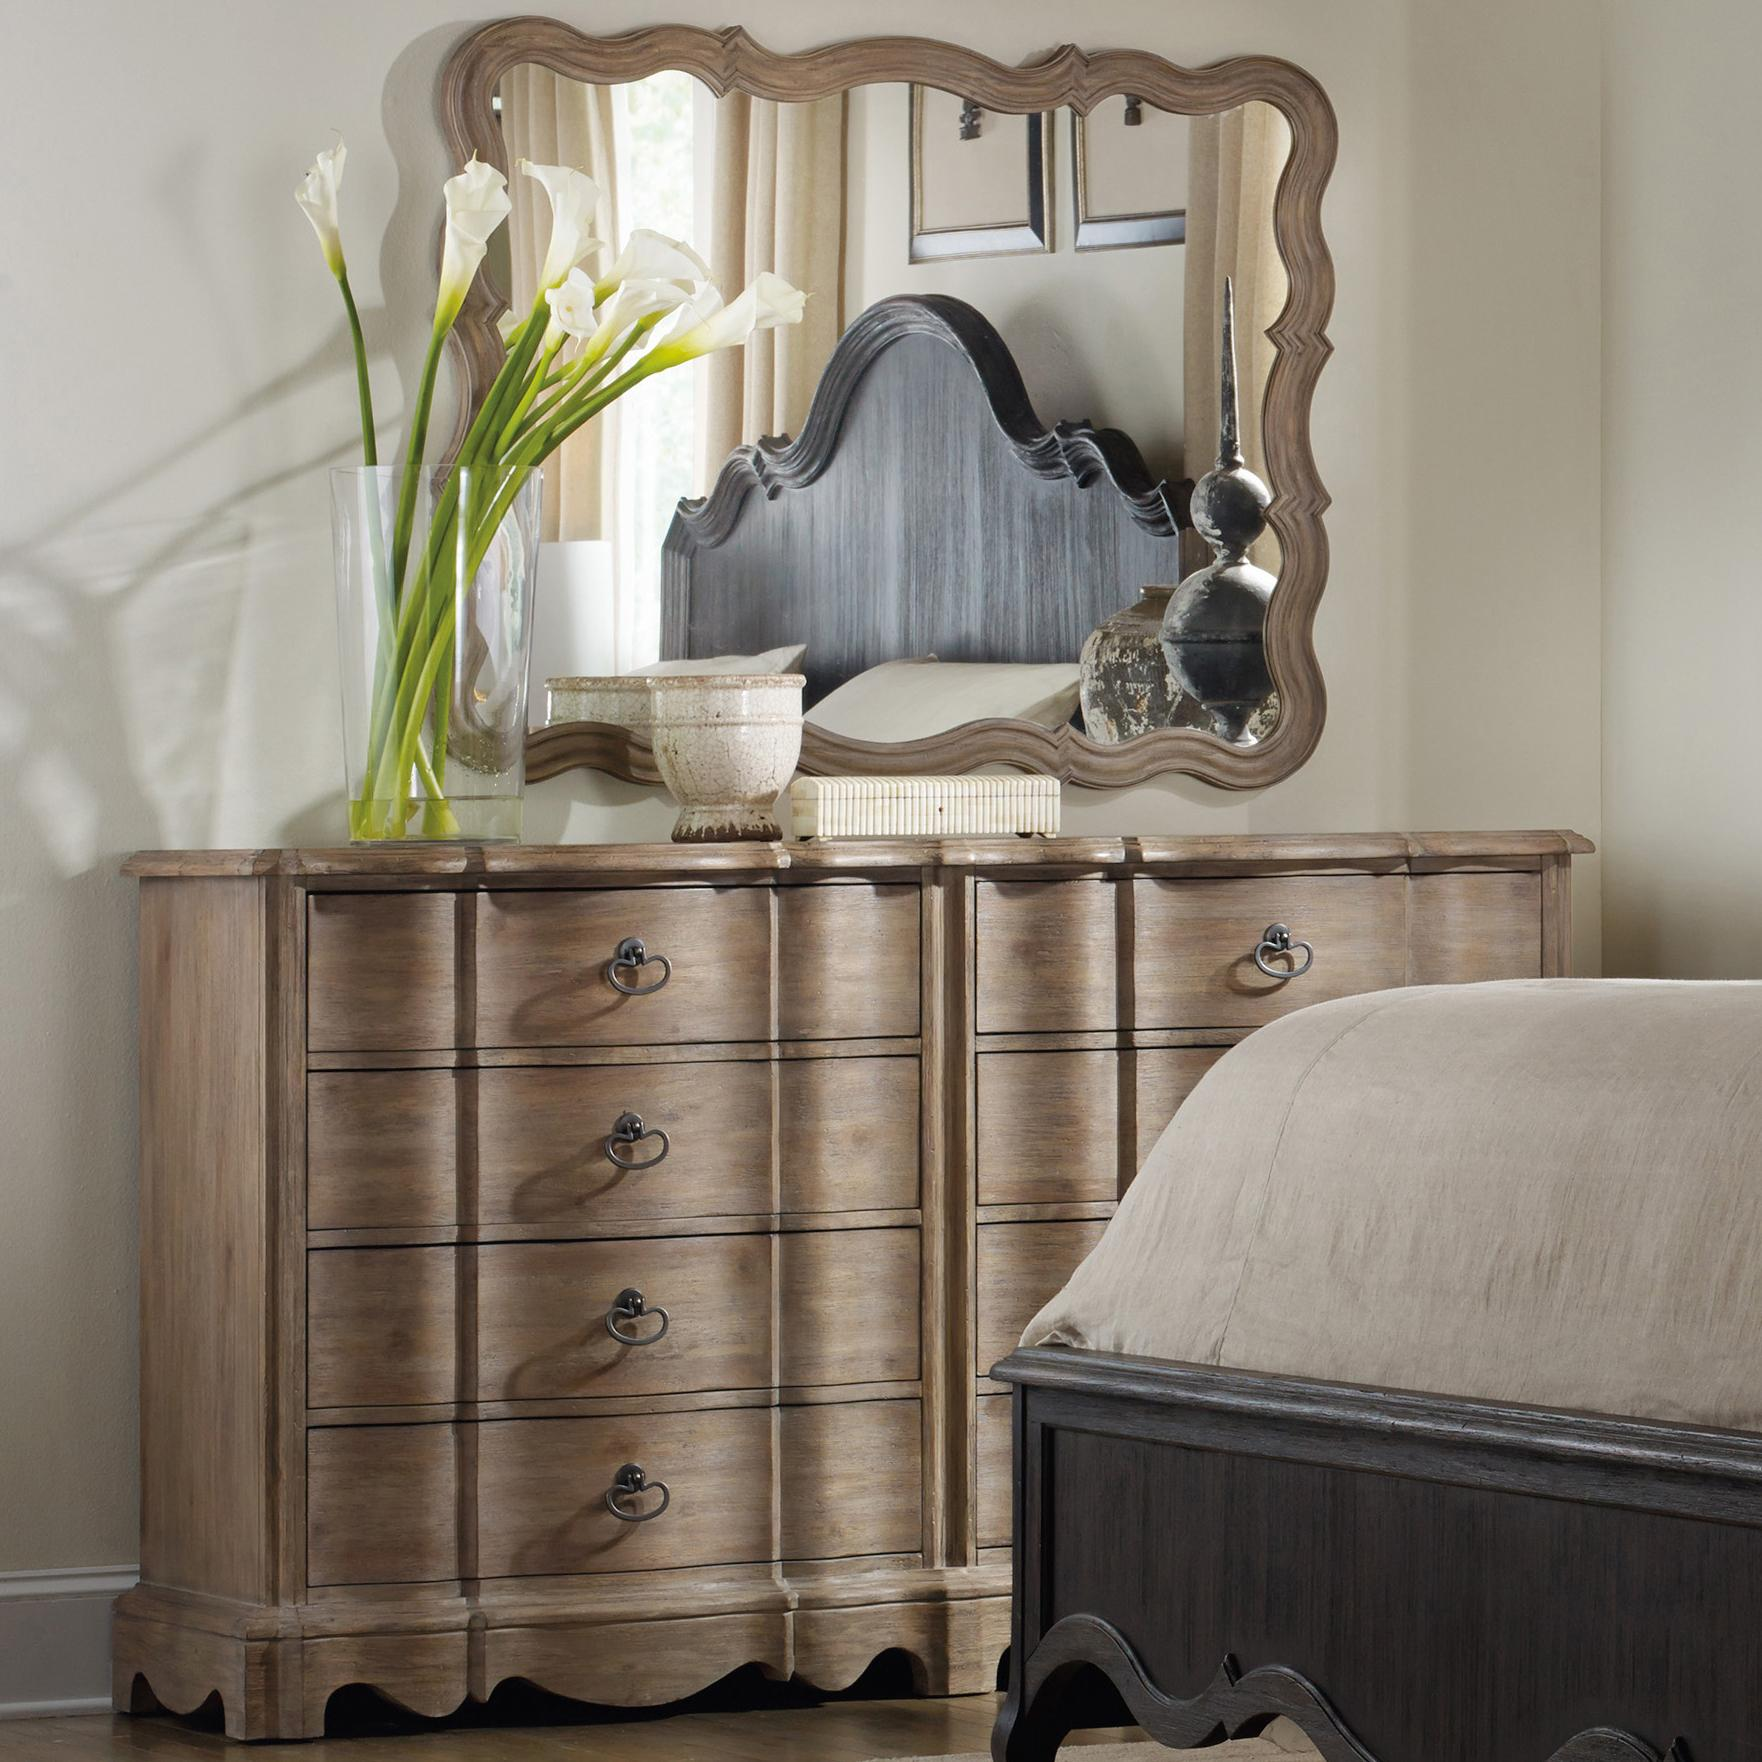 Hamilton Home Corsica Dresser and Mirror - Item Number: 5180-90002+4